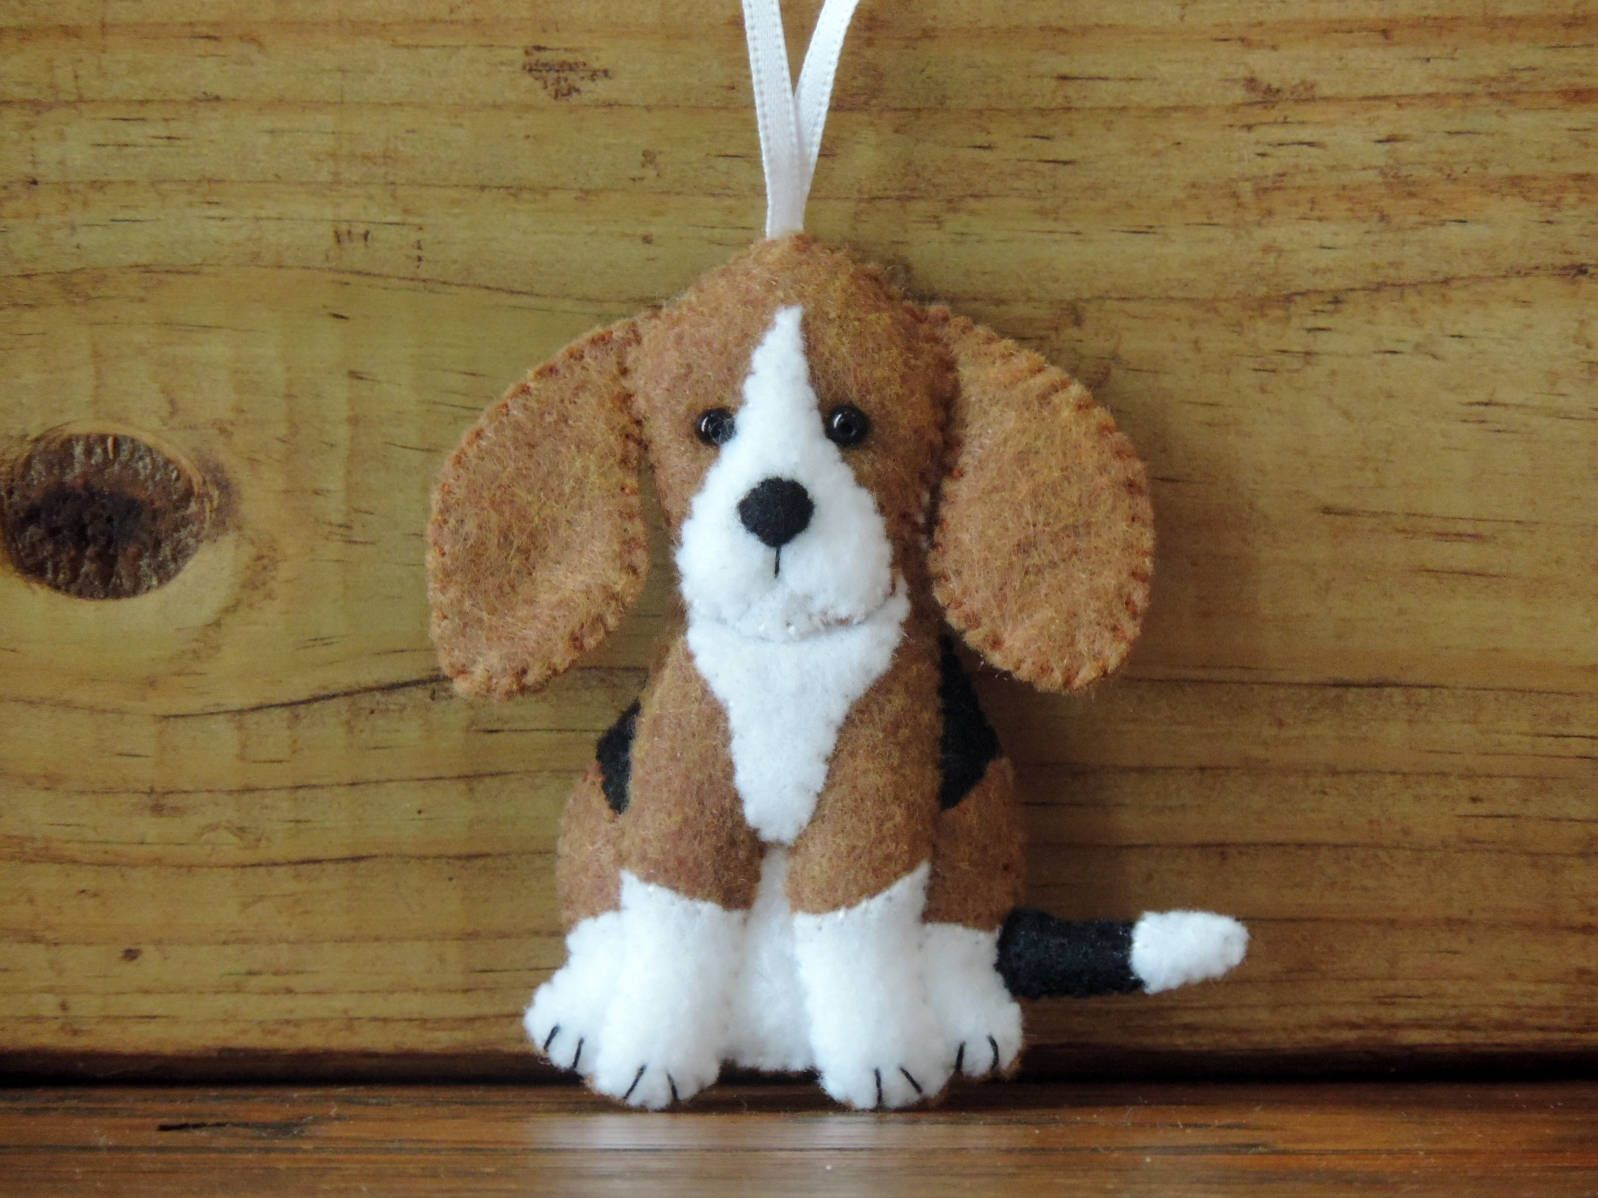 Beagle Dog Felt Ornament Beagle Puppy English Beagle Scent Hound Copper Brown White Black Pup Ornament Little Foxhound Baby Dog Lover Gift